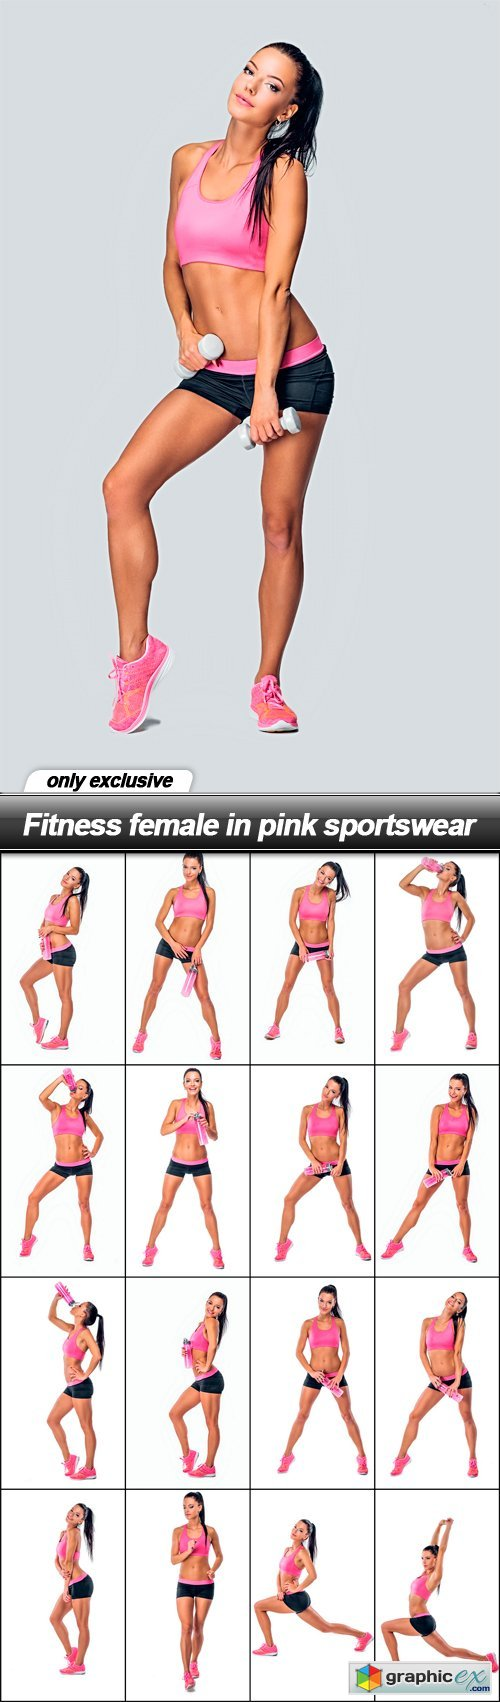 Fitness female in pink sportswear - 17 UHQ JPEG